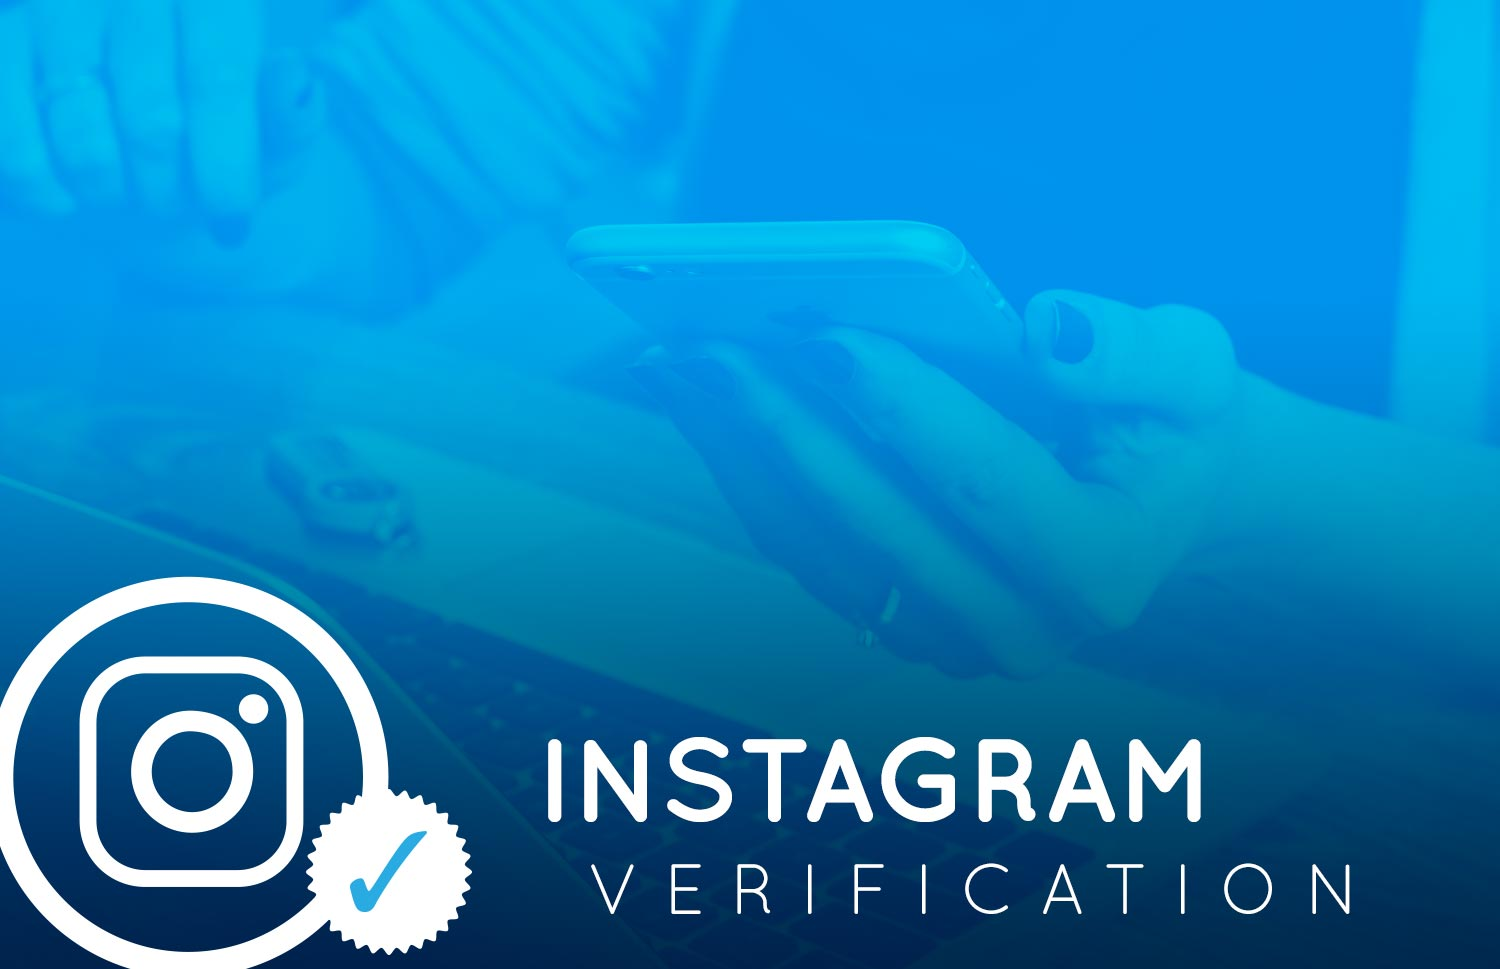 Instagram Verification: Why and How